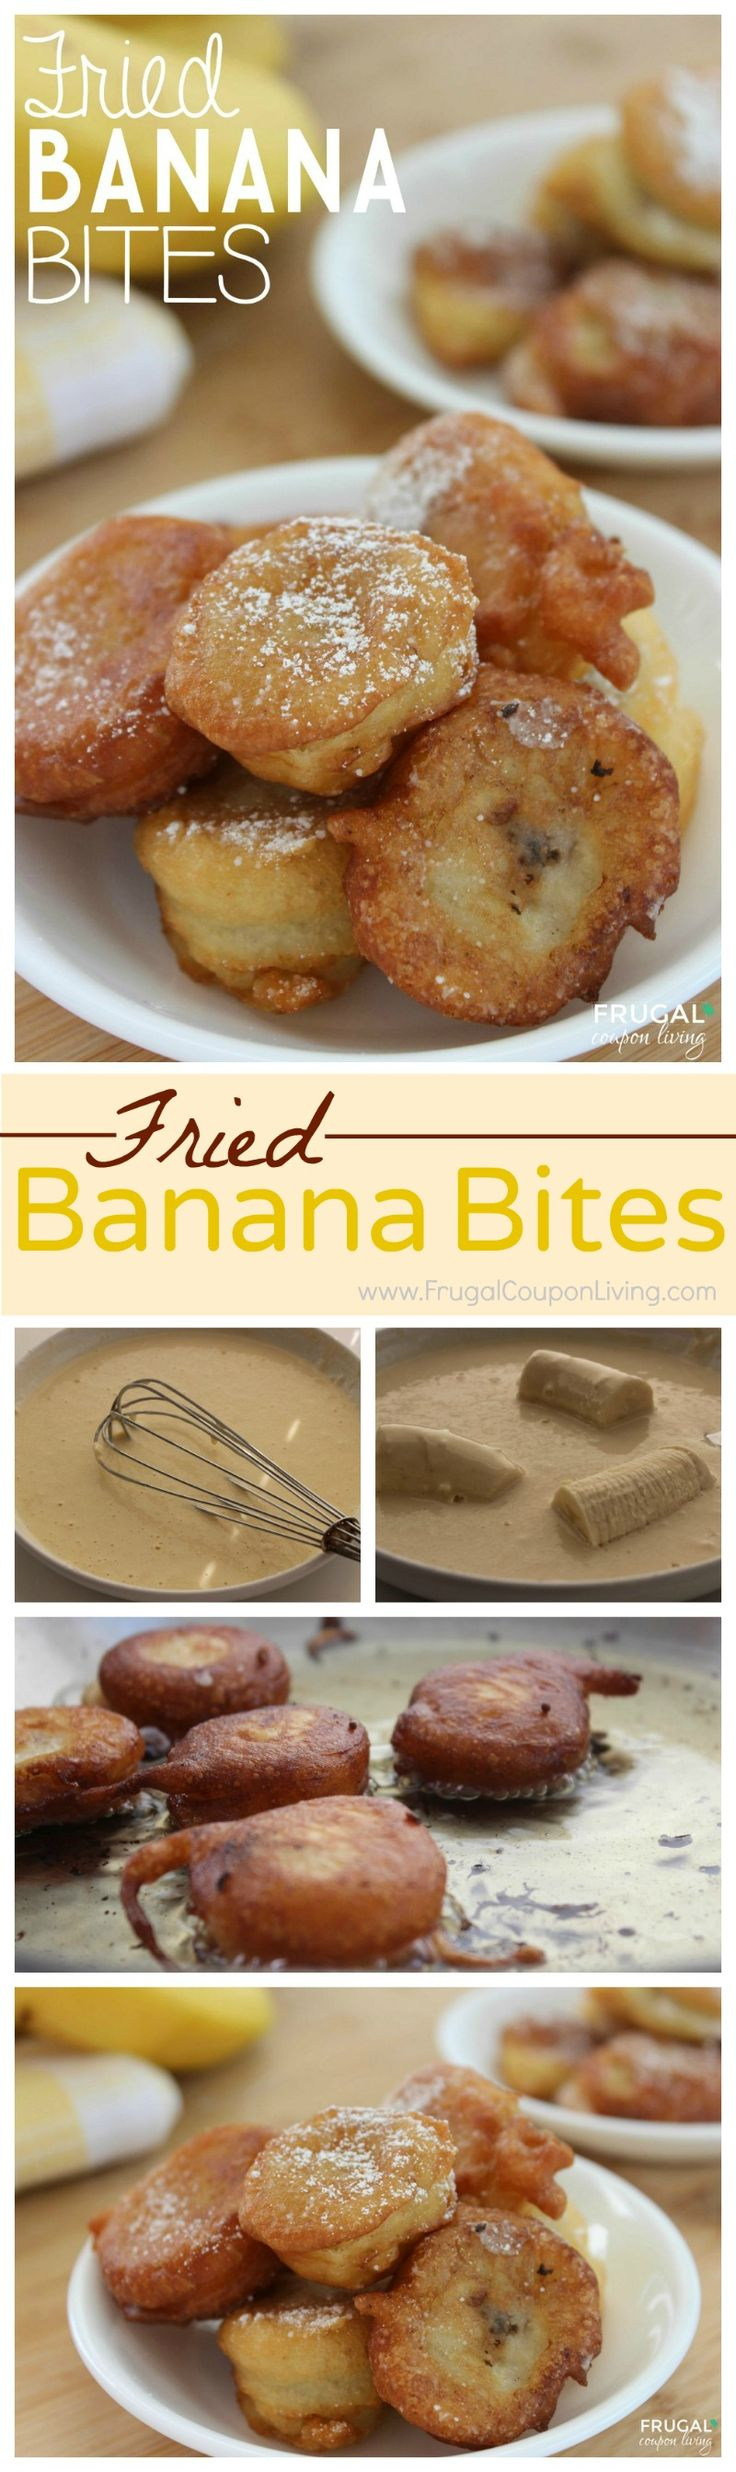 Sweet Fried Banana Bites aka Banana Pancakes - the sweet taste of pancake mix, bananas and powdered sugar - absolutely delicious!